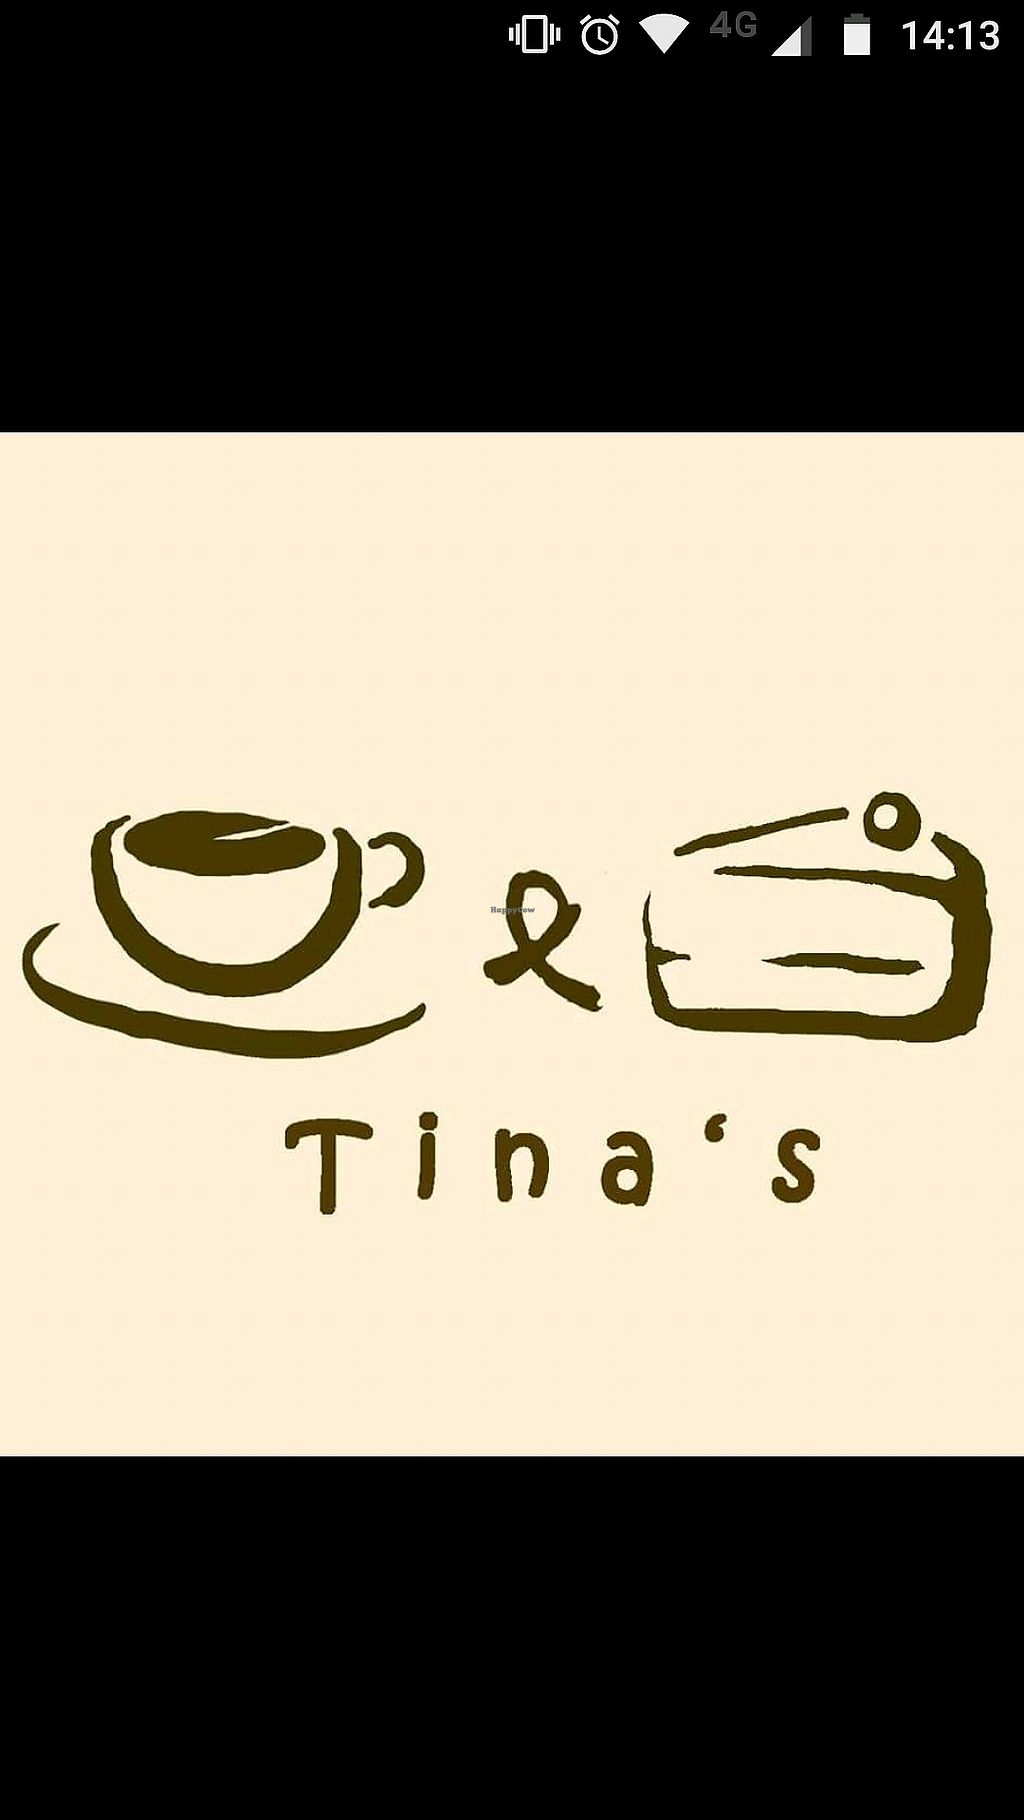 "Photo of Tina's   by <a href=""/members/profile/RobinErithacusRubec"">RobinErithacusRubec</a> <br/>Tina's... where the coffee is bitter, and the pie is sweet <br/> January 26, 2018  - <a href='/contact/abuse/image/110336/351107'>Report</a>"